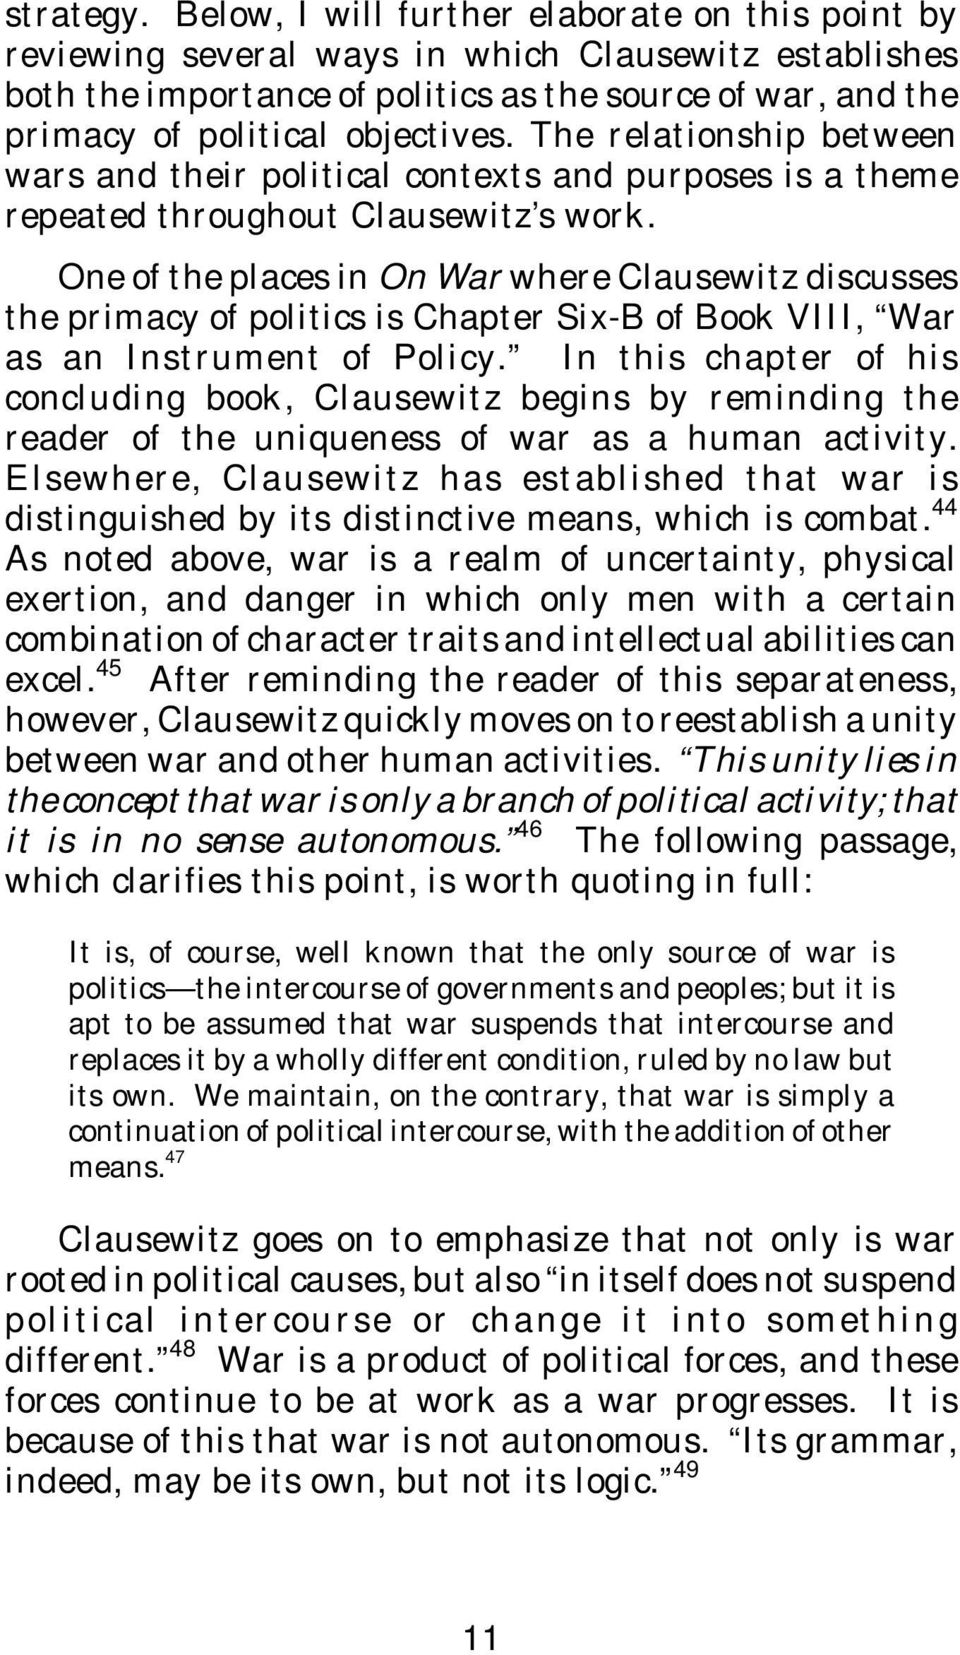 The relationship between wars and their political contexts and purposes is a theme repeated throughout Clausewitz s work.